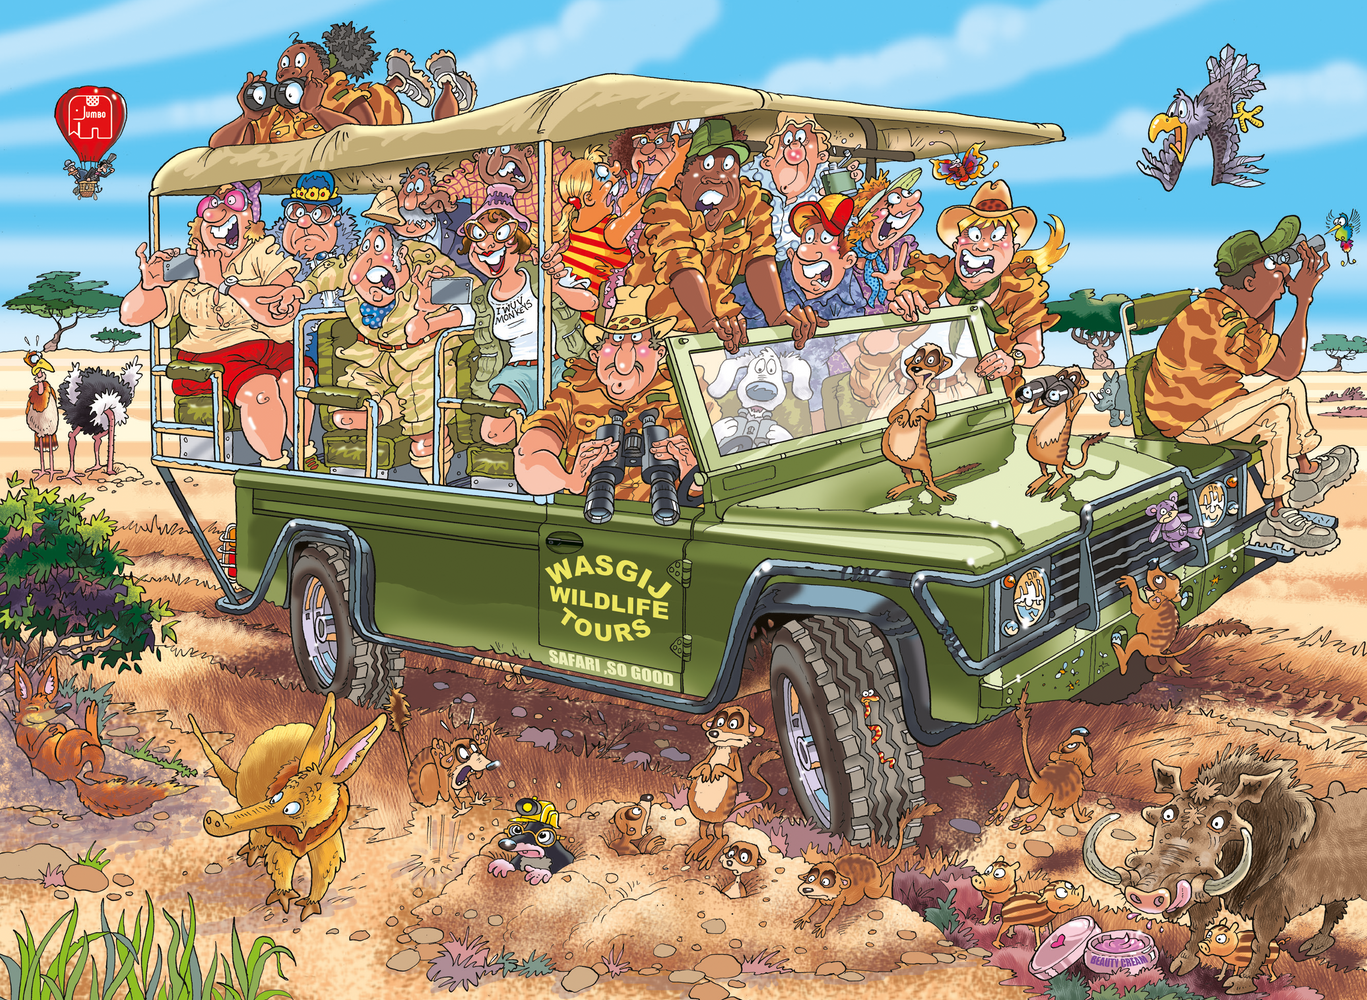 Wasgij Original 31 Safari Surprise! 1000 Piece Jigsaw Puzzle